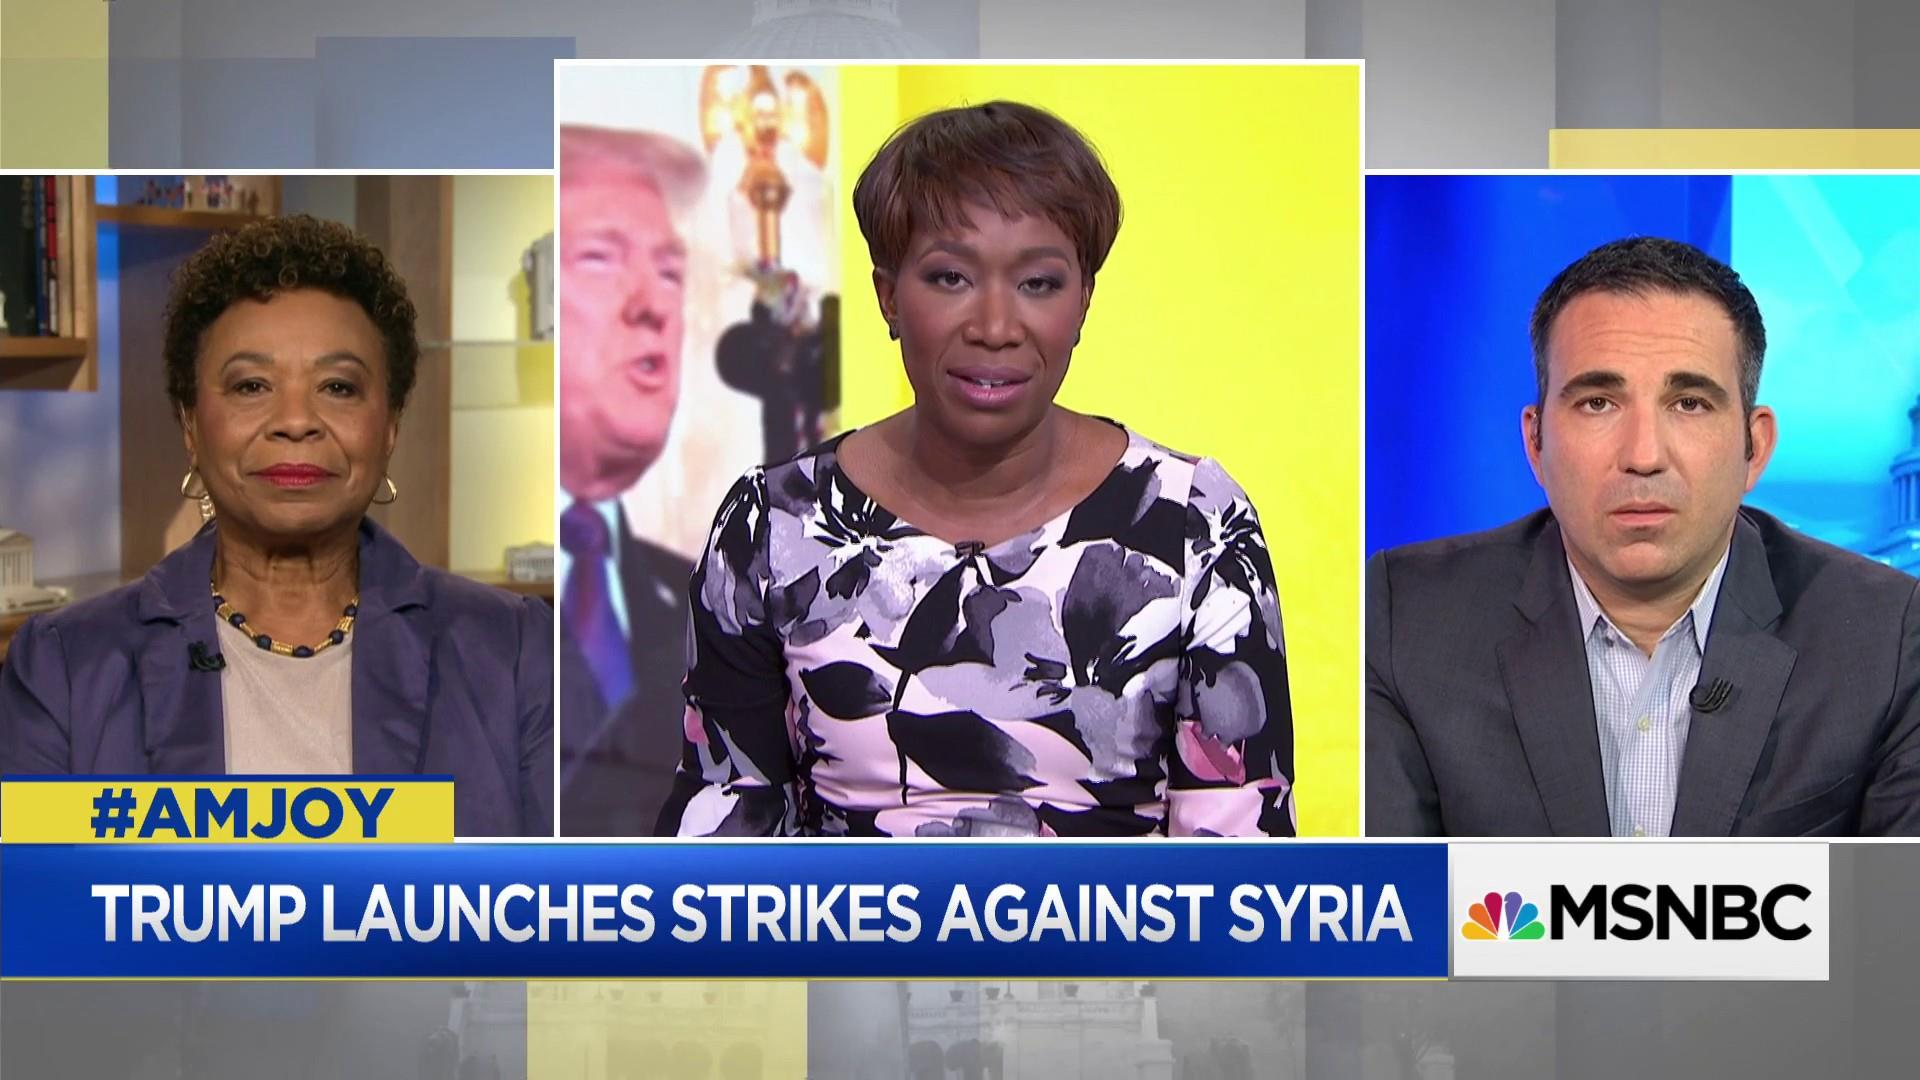 Rep. Barbara Lee: We need to hold Assad accountable